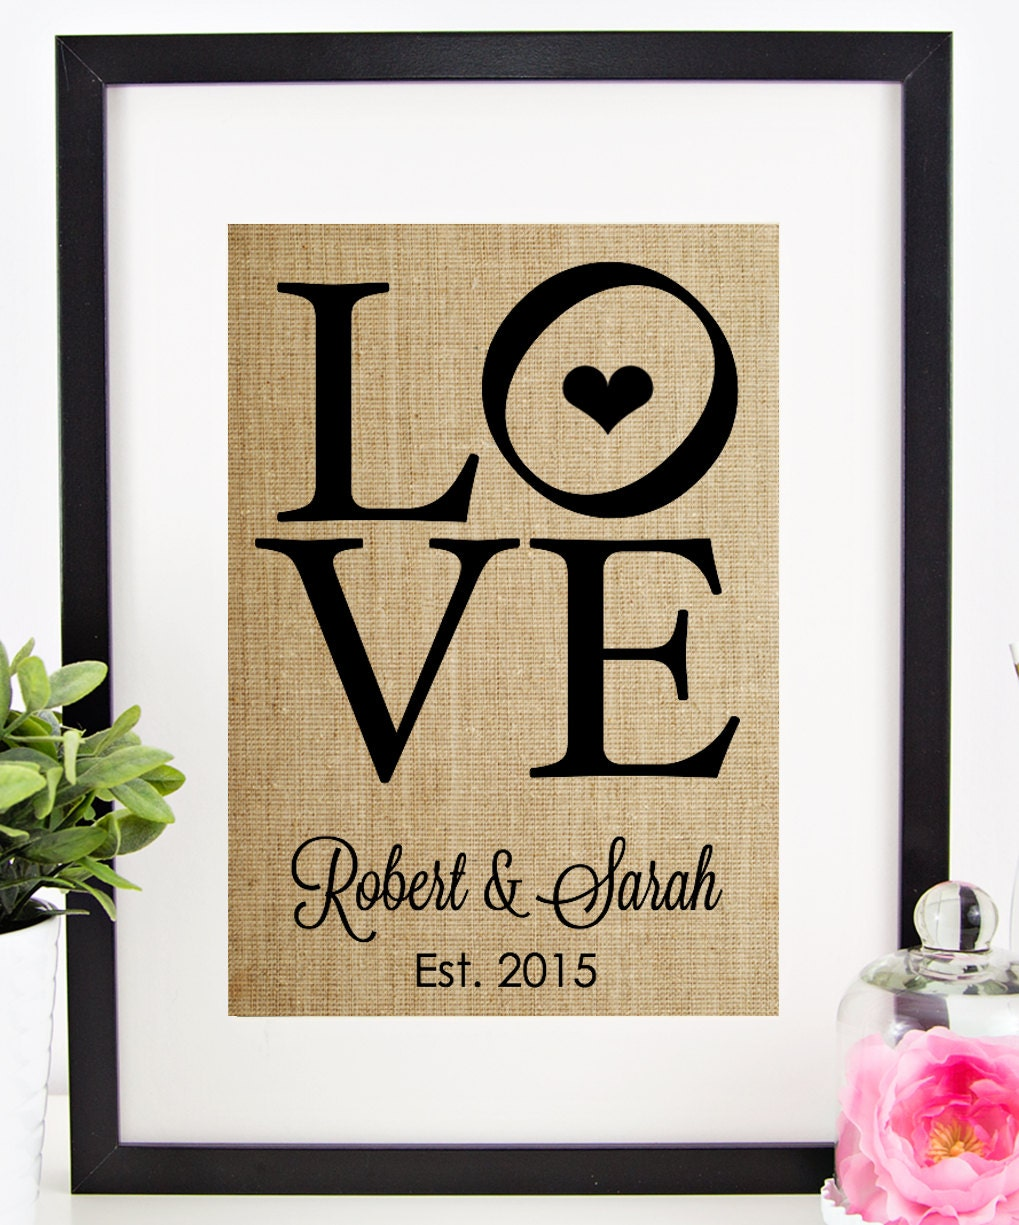 Personalized wedding gift for couple burlap print love sign for Personalized gifts for wedding